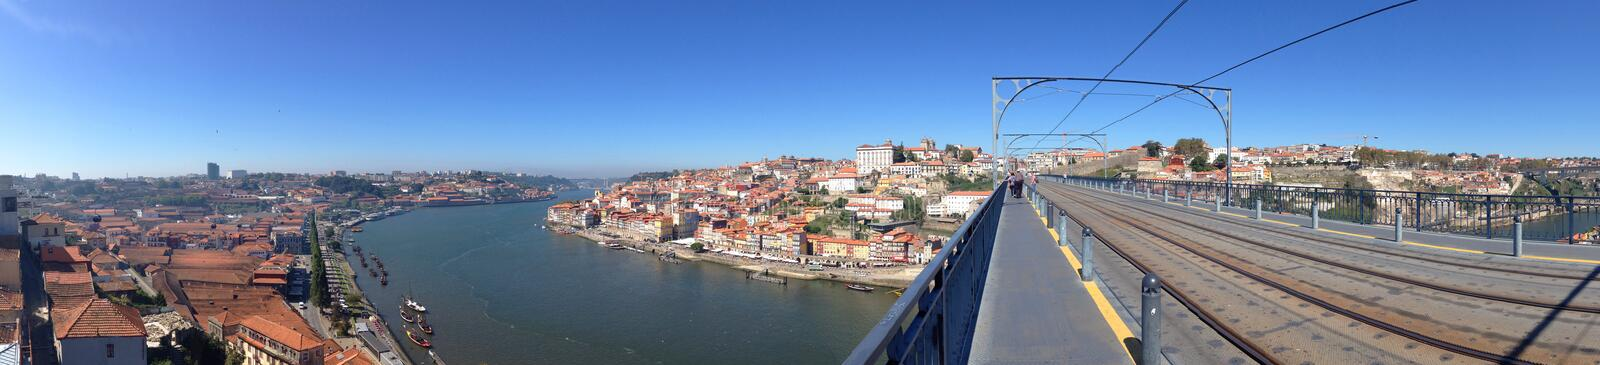 Background panoramic views of the waterfront promenade and Porto Vila Nova de Gaia from the Dom Luis Bridge stock images